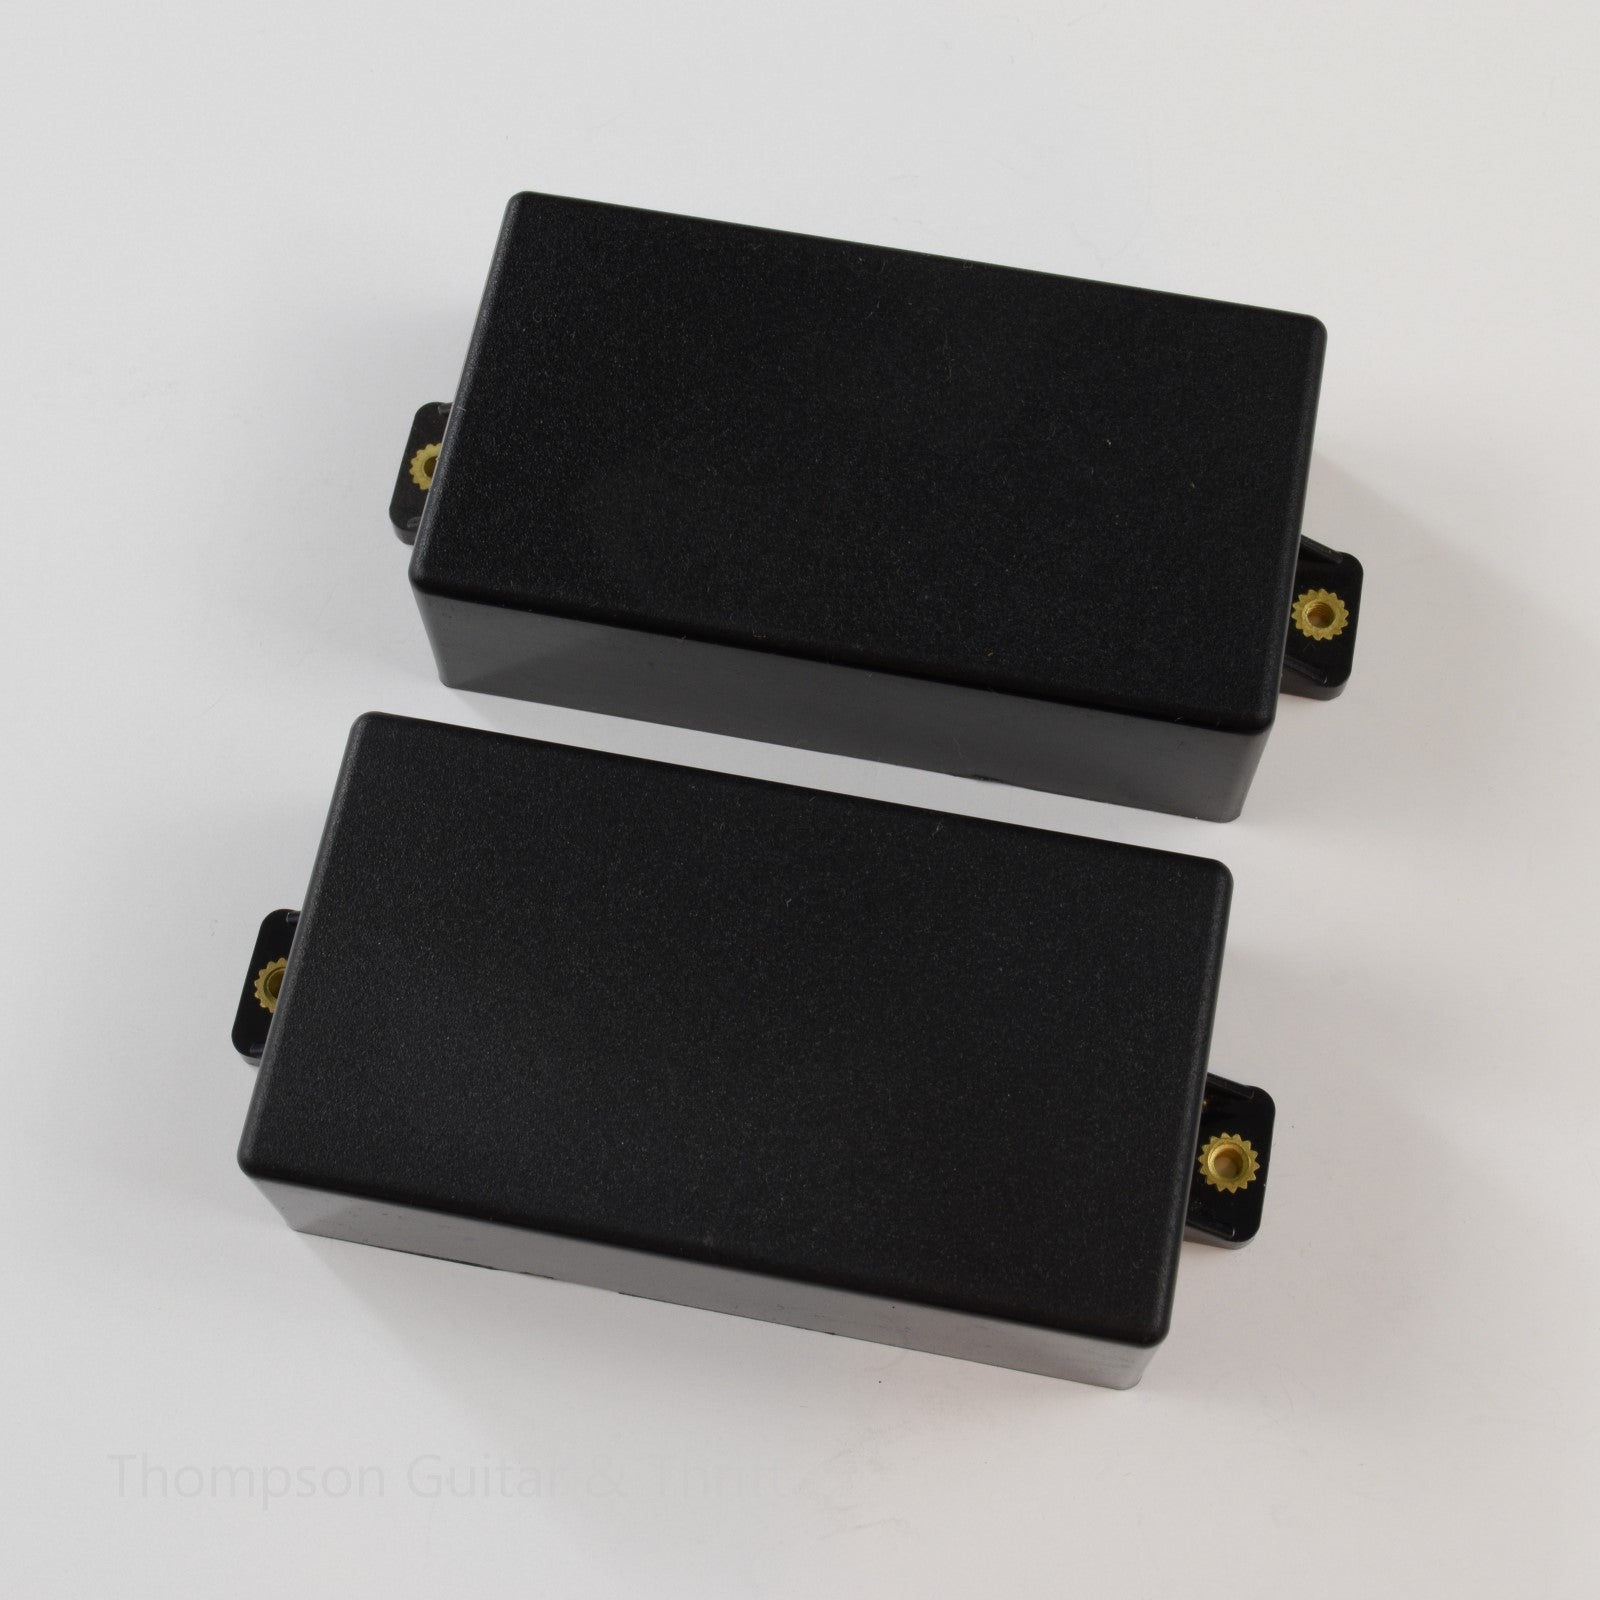 Set of 2 Solid Black Plastic Humbucker Pickup Covers